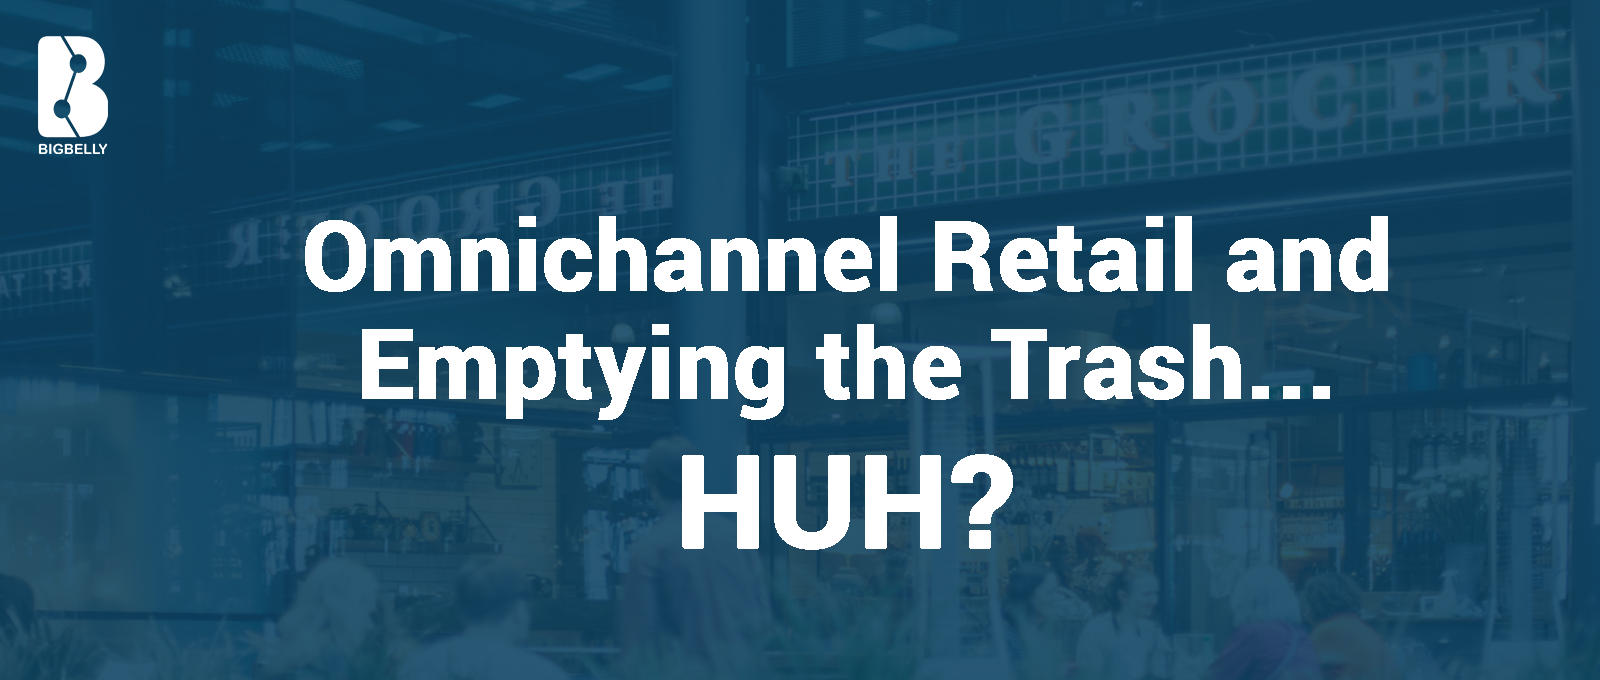 OMNICHANNEL RETAIL AND EMPTYING THE TRASH – HUH.png